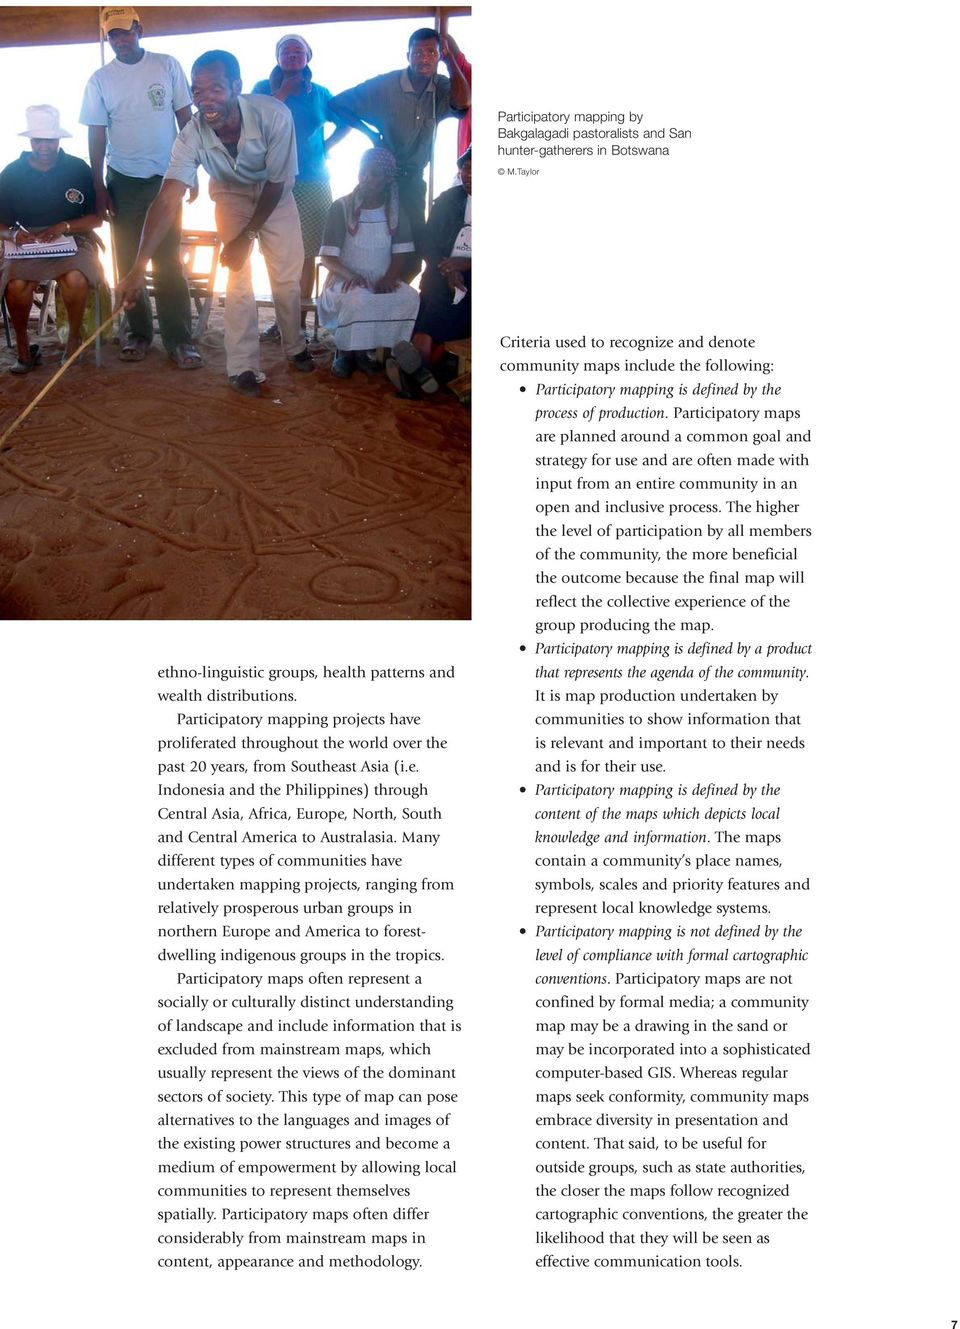 Many different types of communities have undertaken mapping projects, ranging from relatively prosperous urban groups in northern Europe and America to forestdwelling indigenous groups in the tropics.